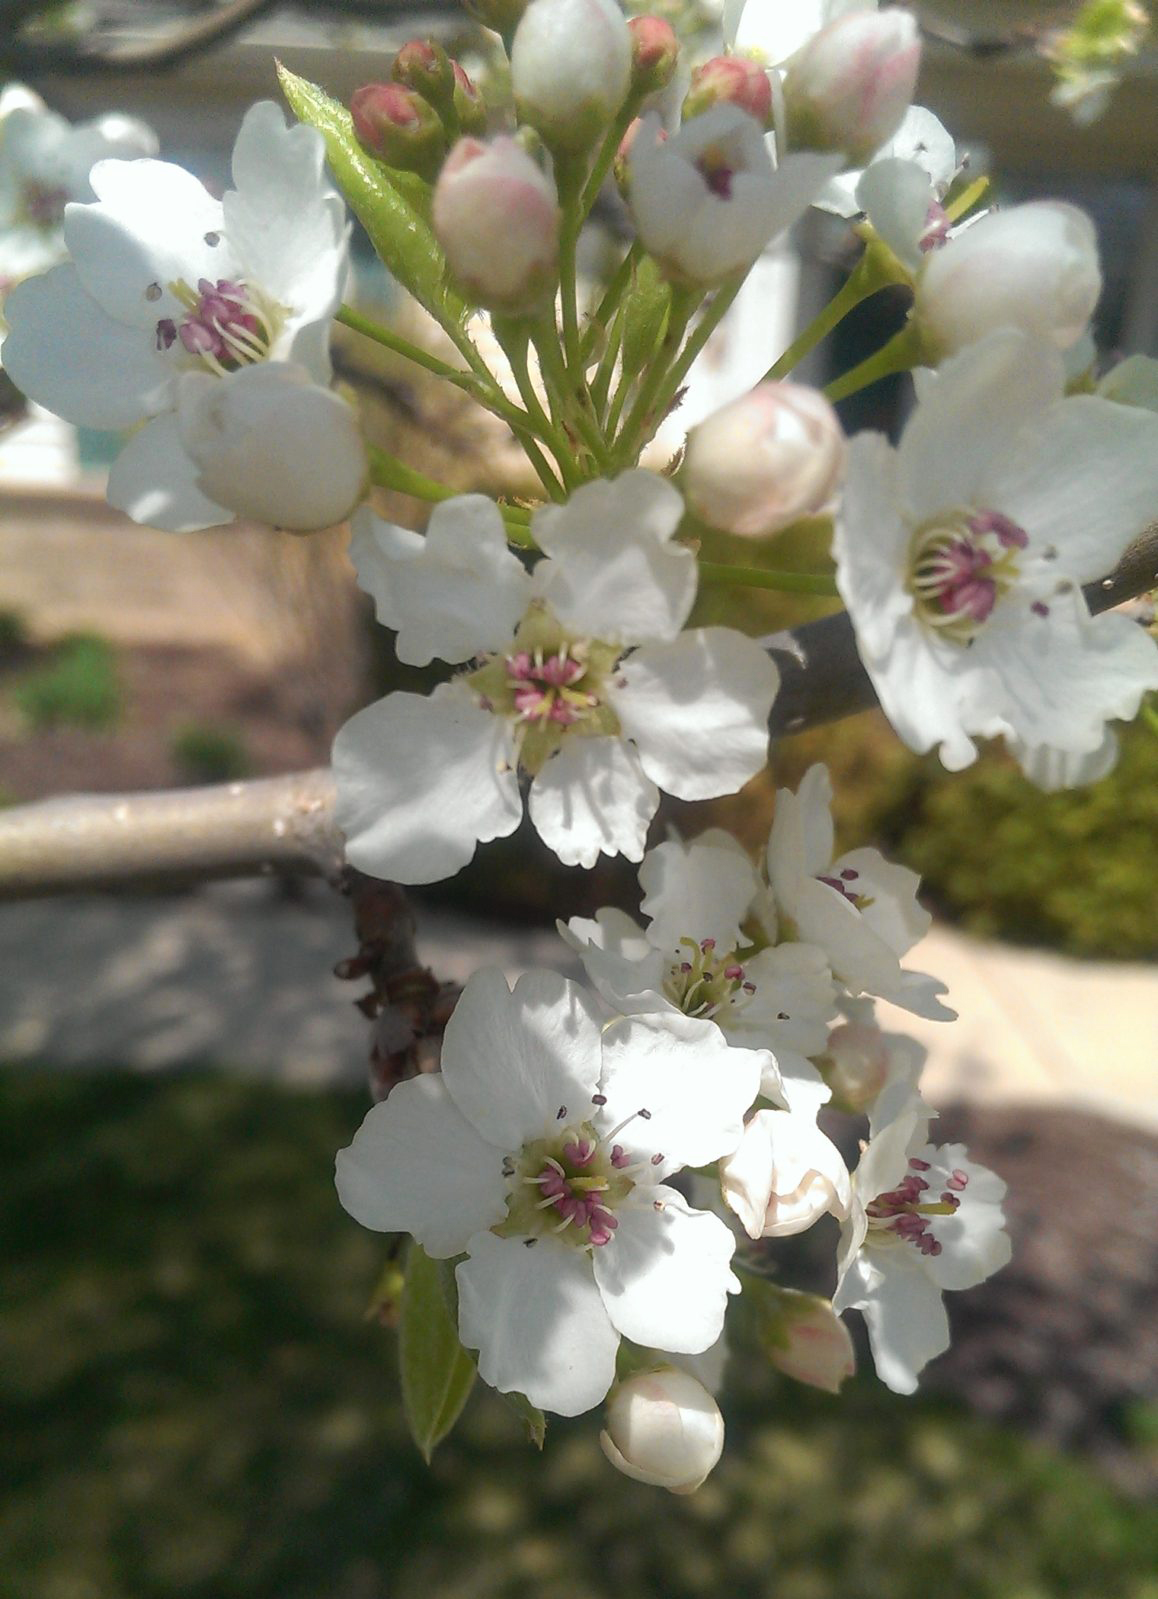 This is a picture of a Callery pear tree flower.